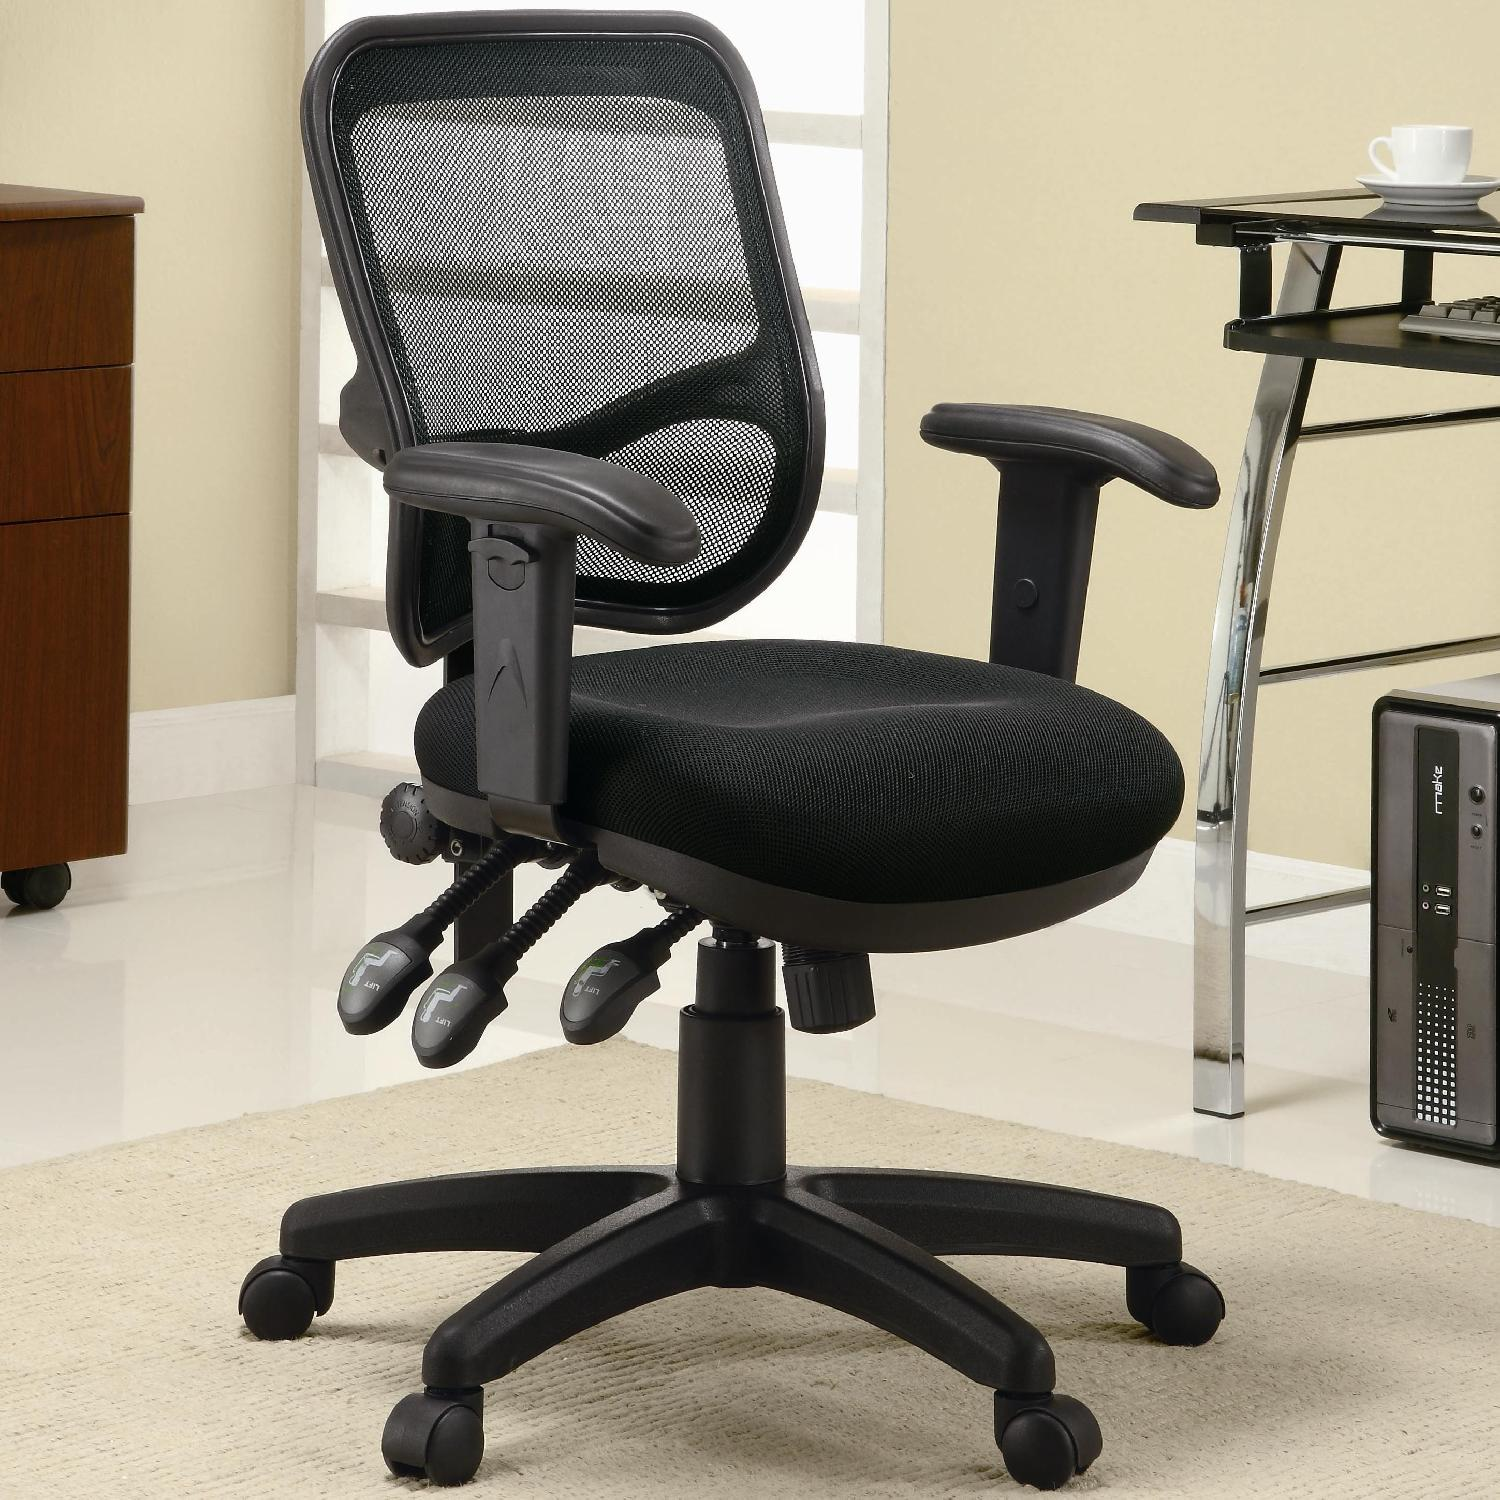 Contemporary Adjustable Ergonomic Seat Office Chair w/ Mesh Back-0